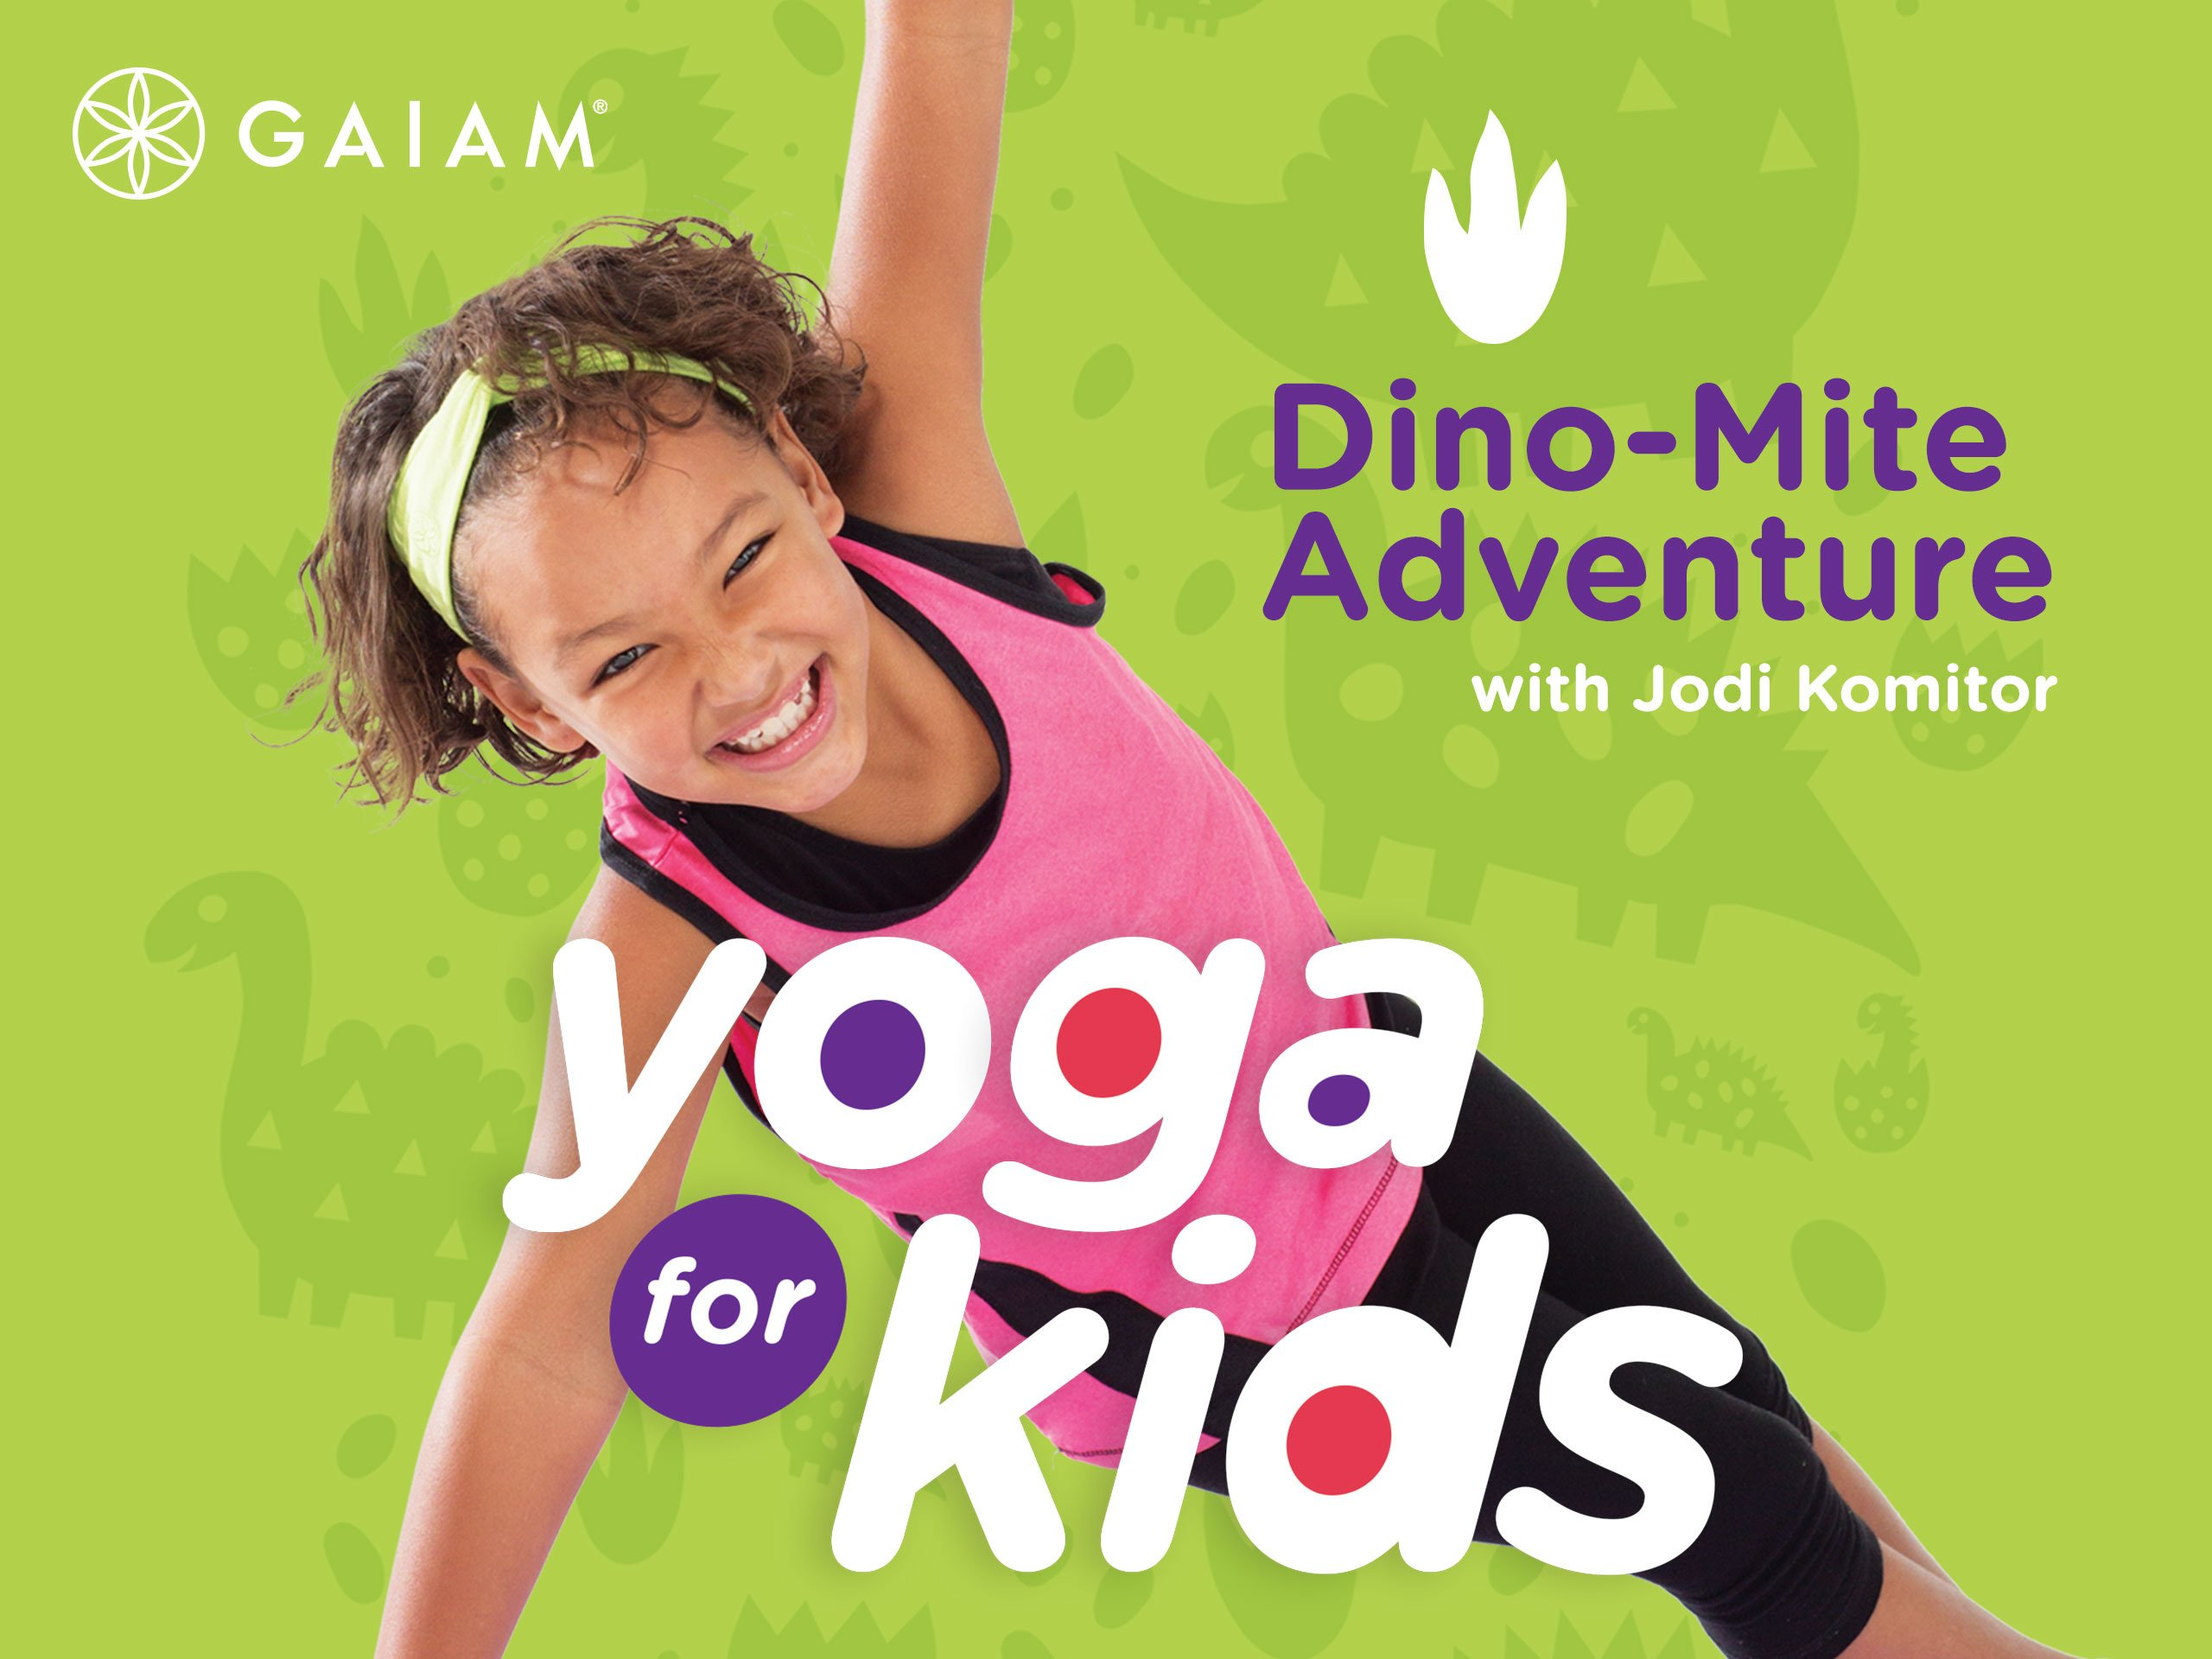 Amazon.com: Gaiam: Yoga For Kids: Dino-Mite Adventure: Gaiam ...